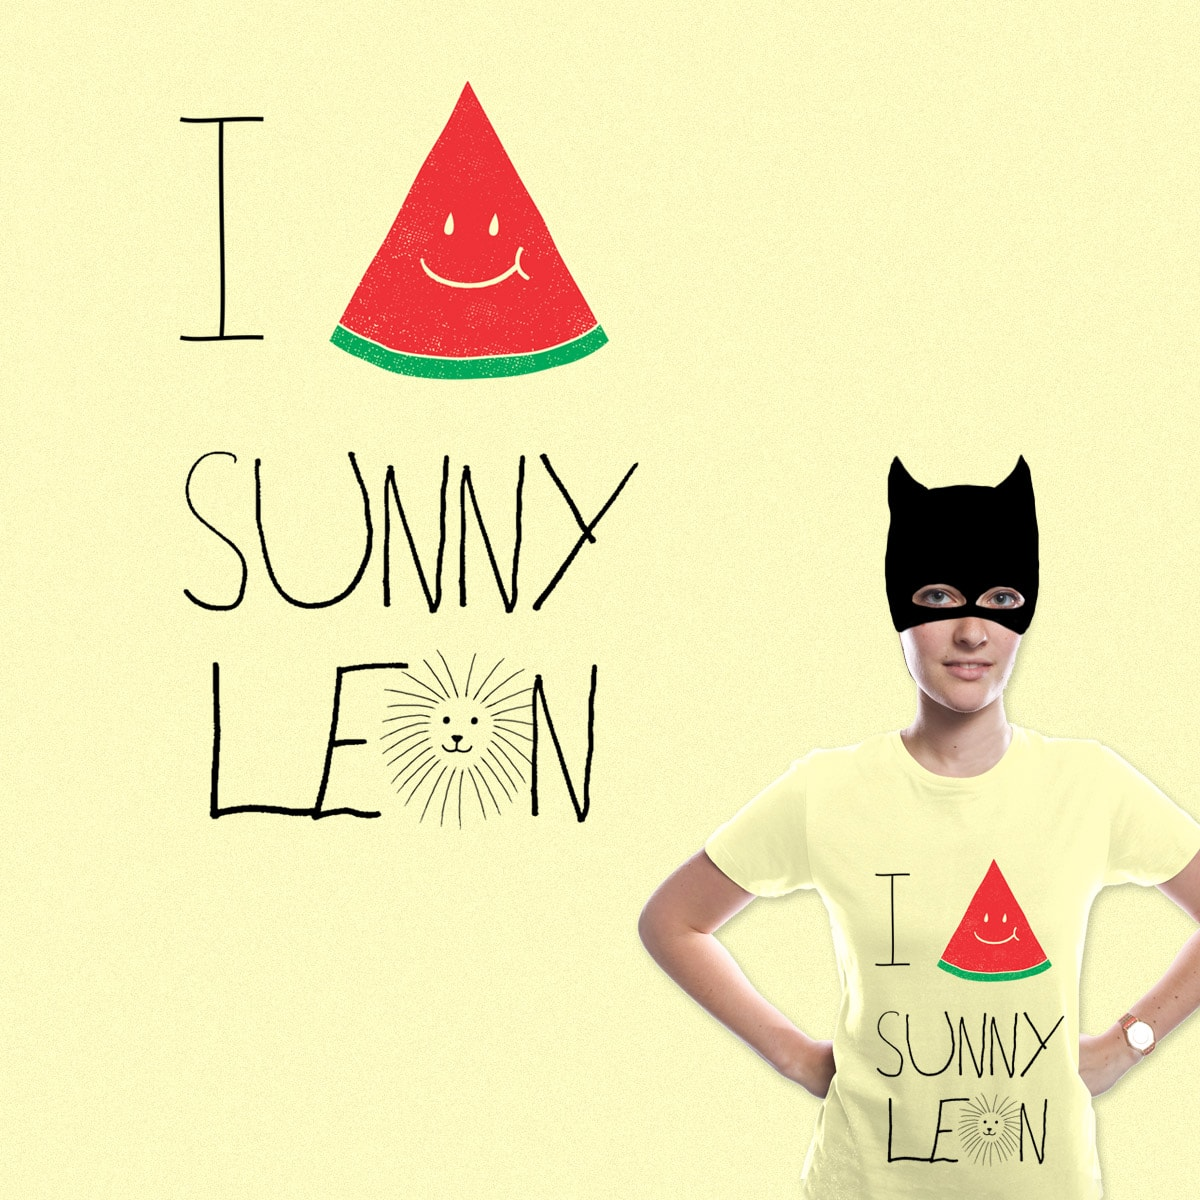 I Donut Like Sunny Day by kuli_grafis on Threadless